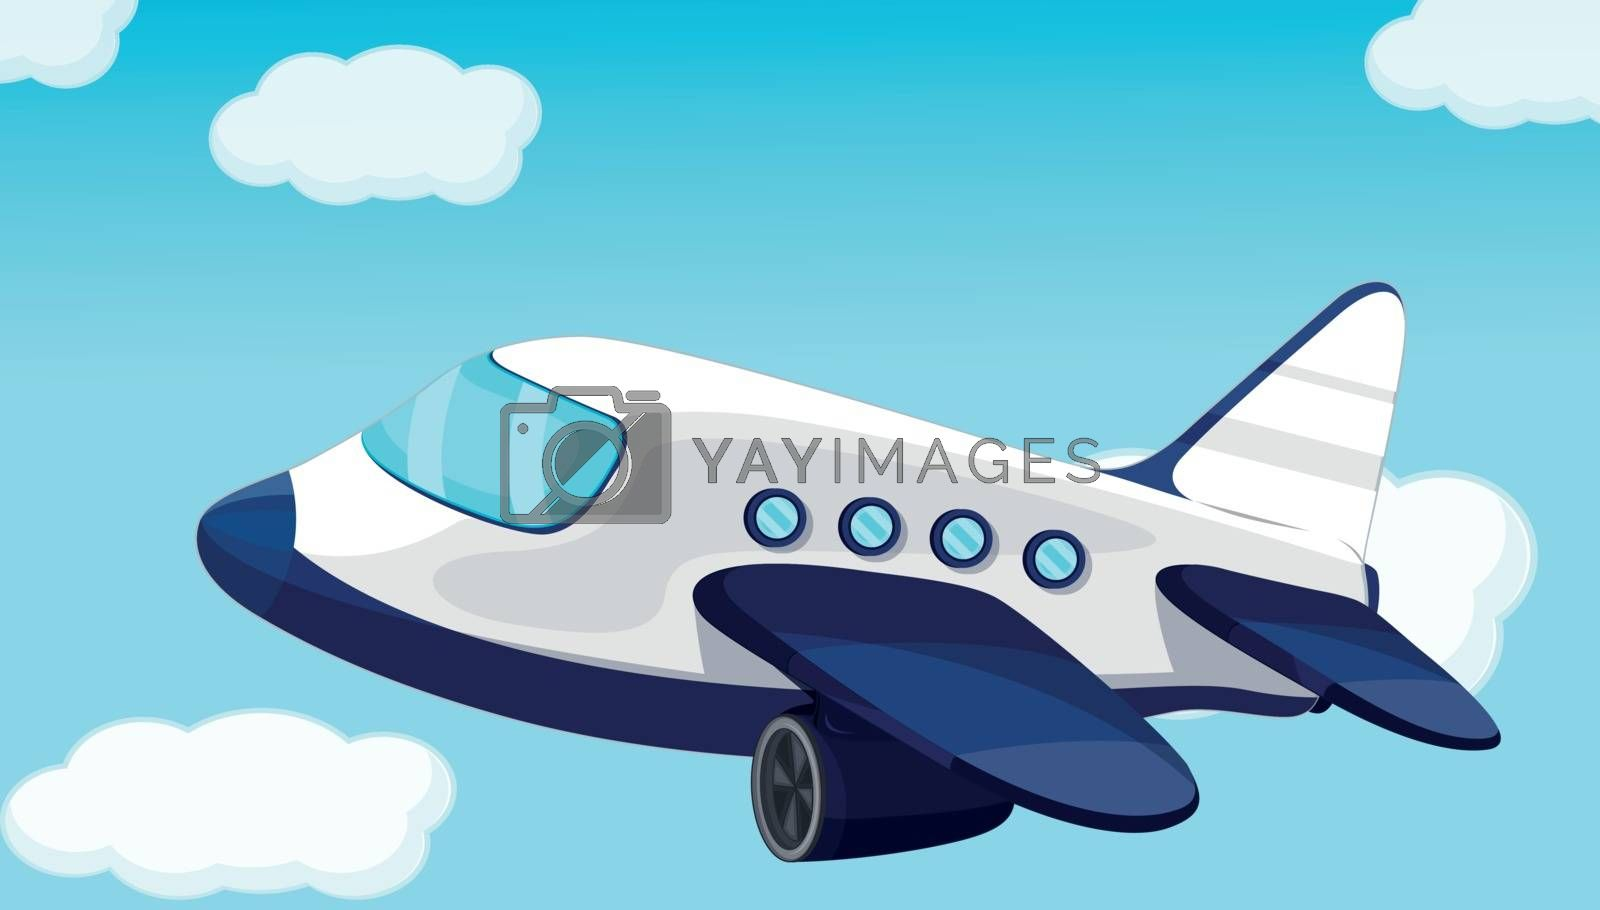 Royalty free image of plane by iimages